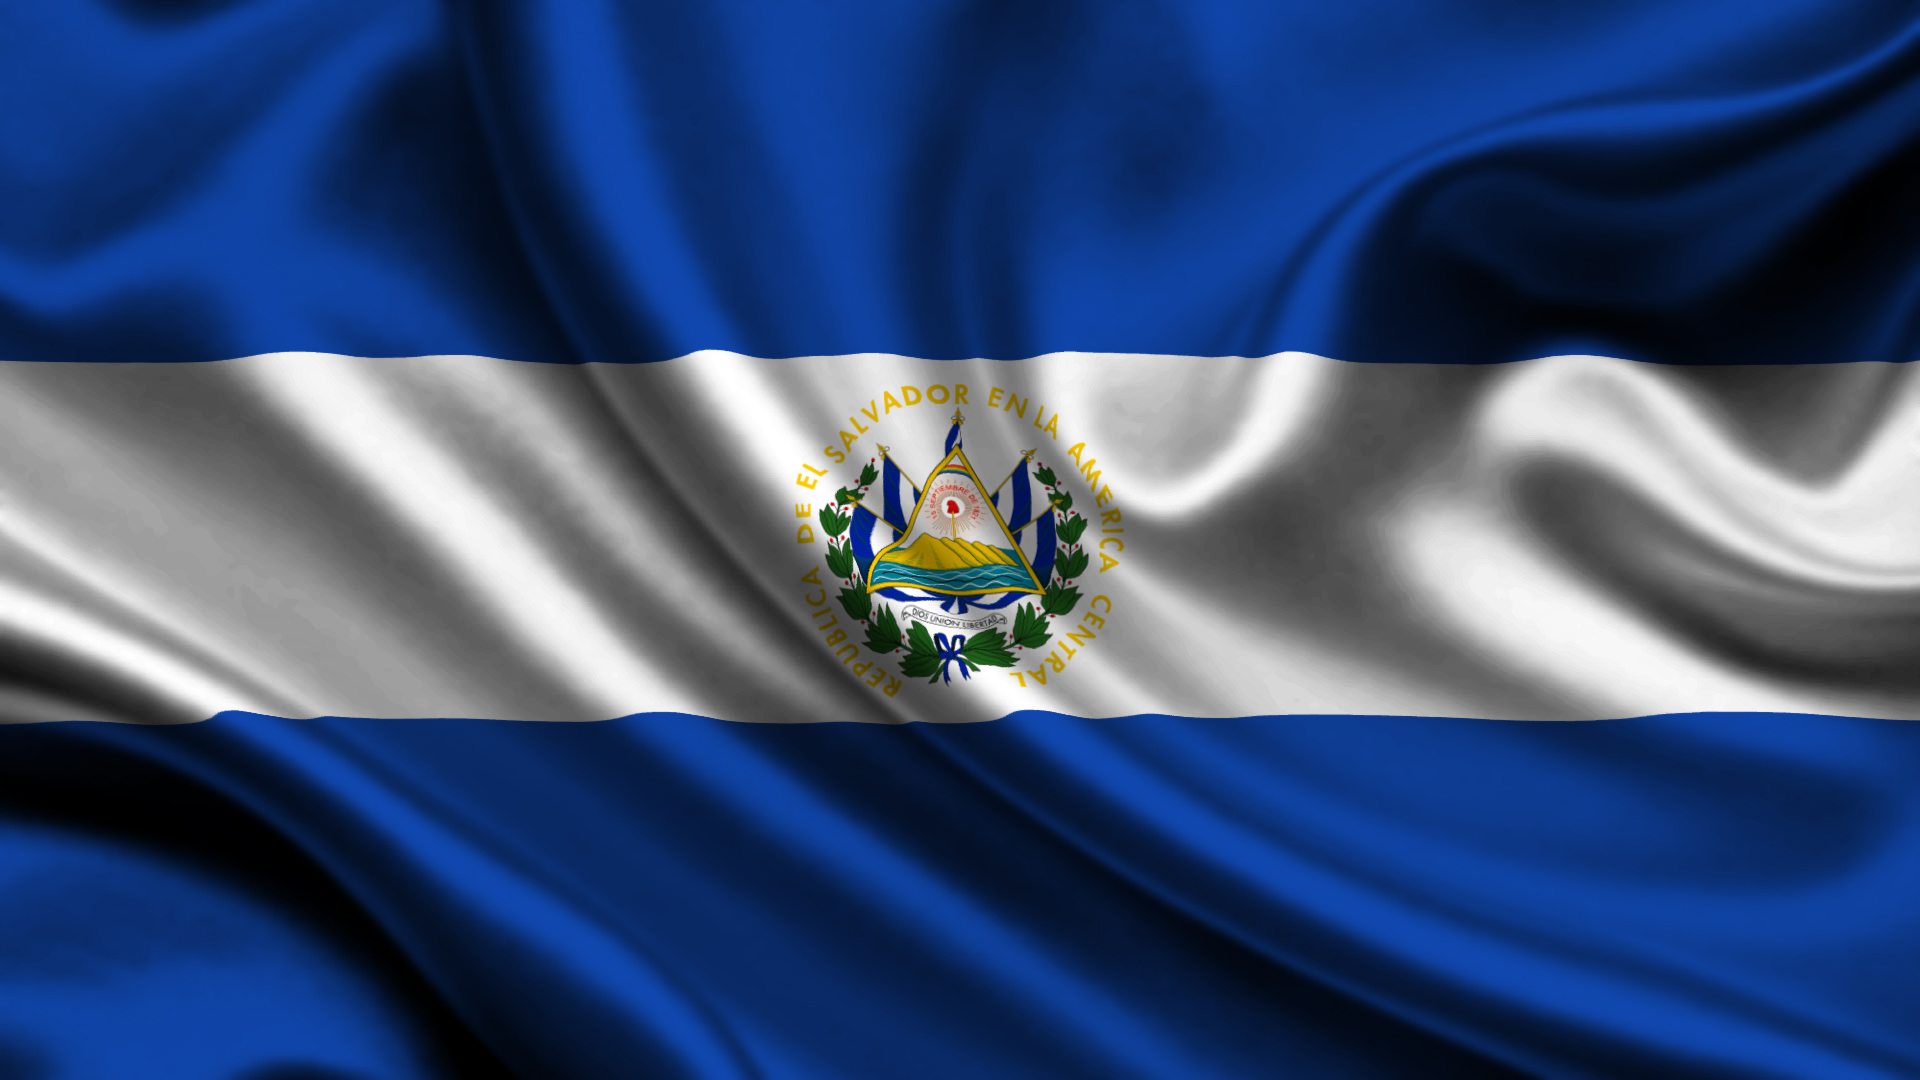 El Salvador National Flag and Naval Ensign